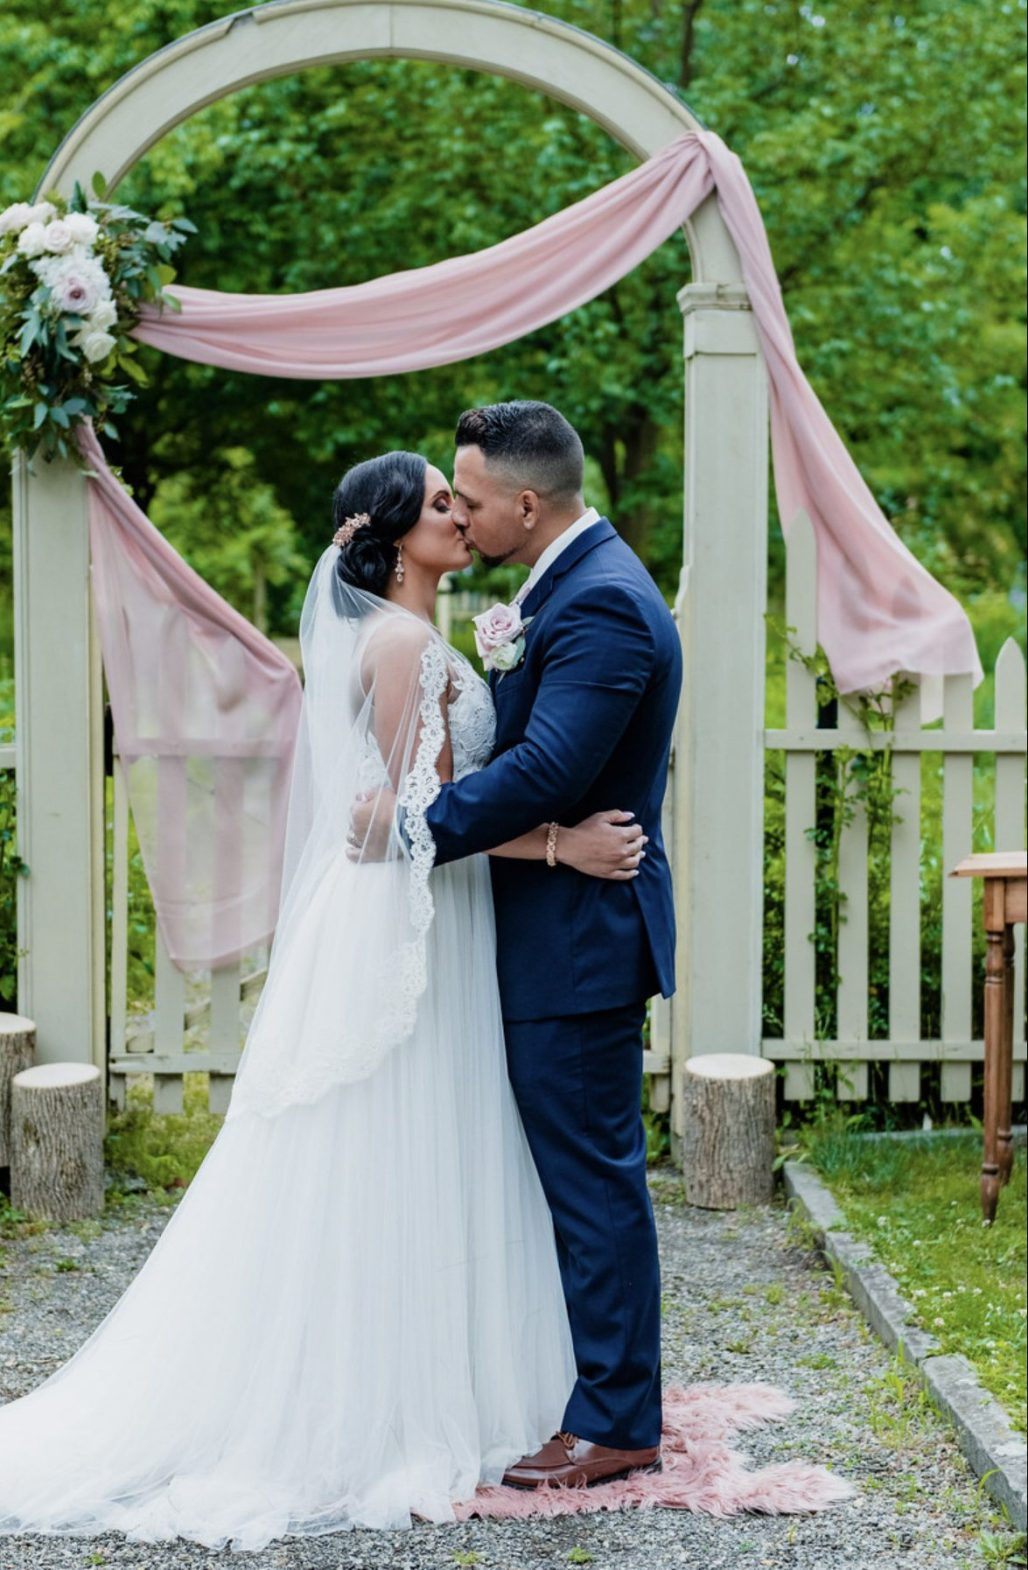 Nicole & Jerry's Boho Garden Wedding at The Oakeside Mansion || Dreamery EventsNicole & Jerry's Boho Garden Wedding at The Oakeside Mansion || Dreamery Events